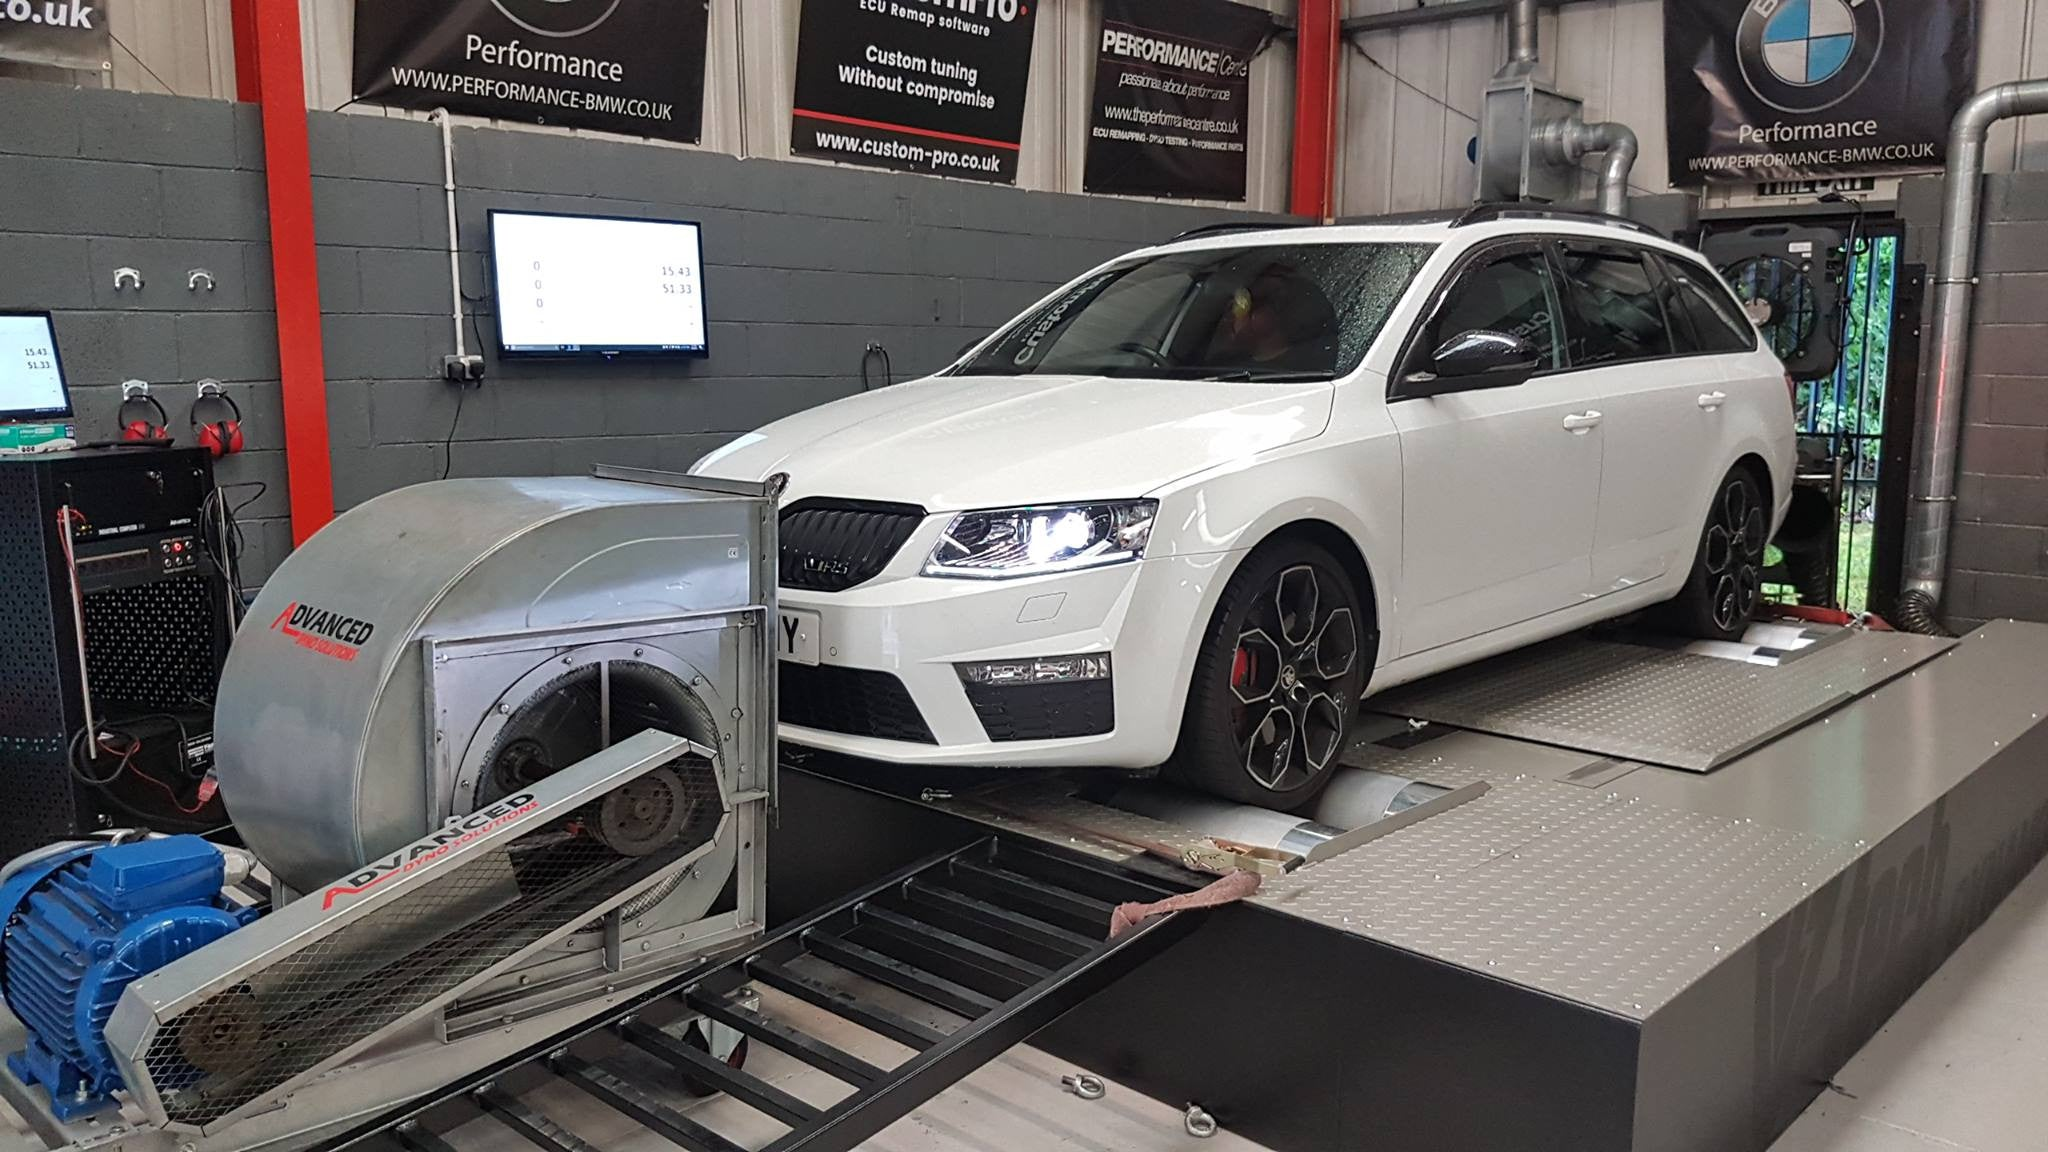 Skoda Octavia VRS - JB1 to JB4 upgrade